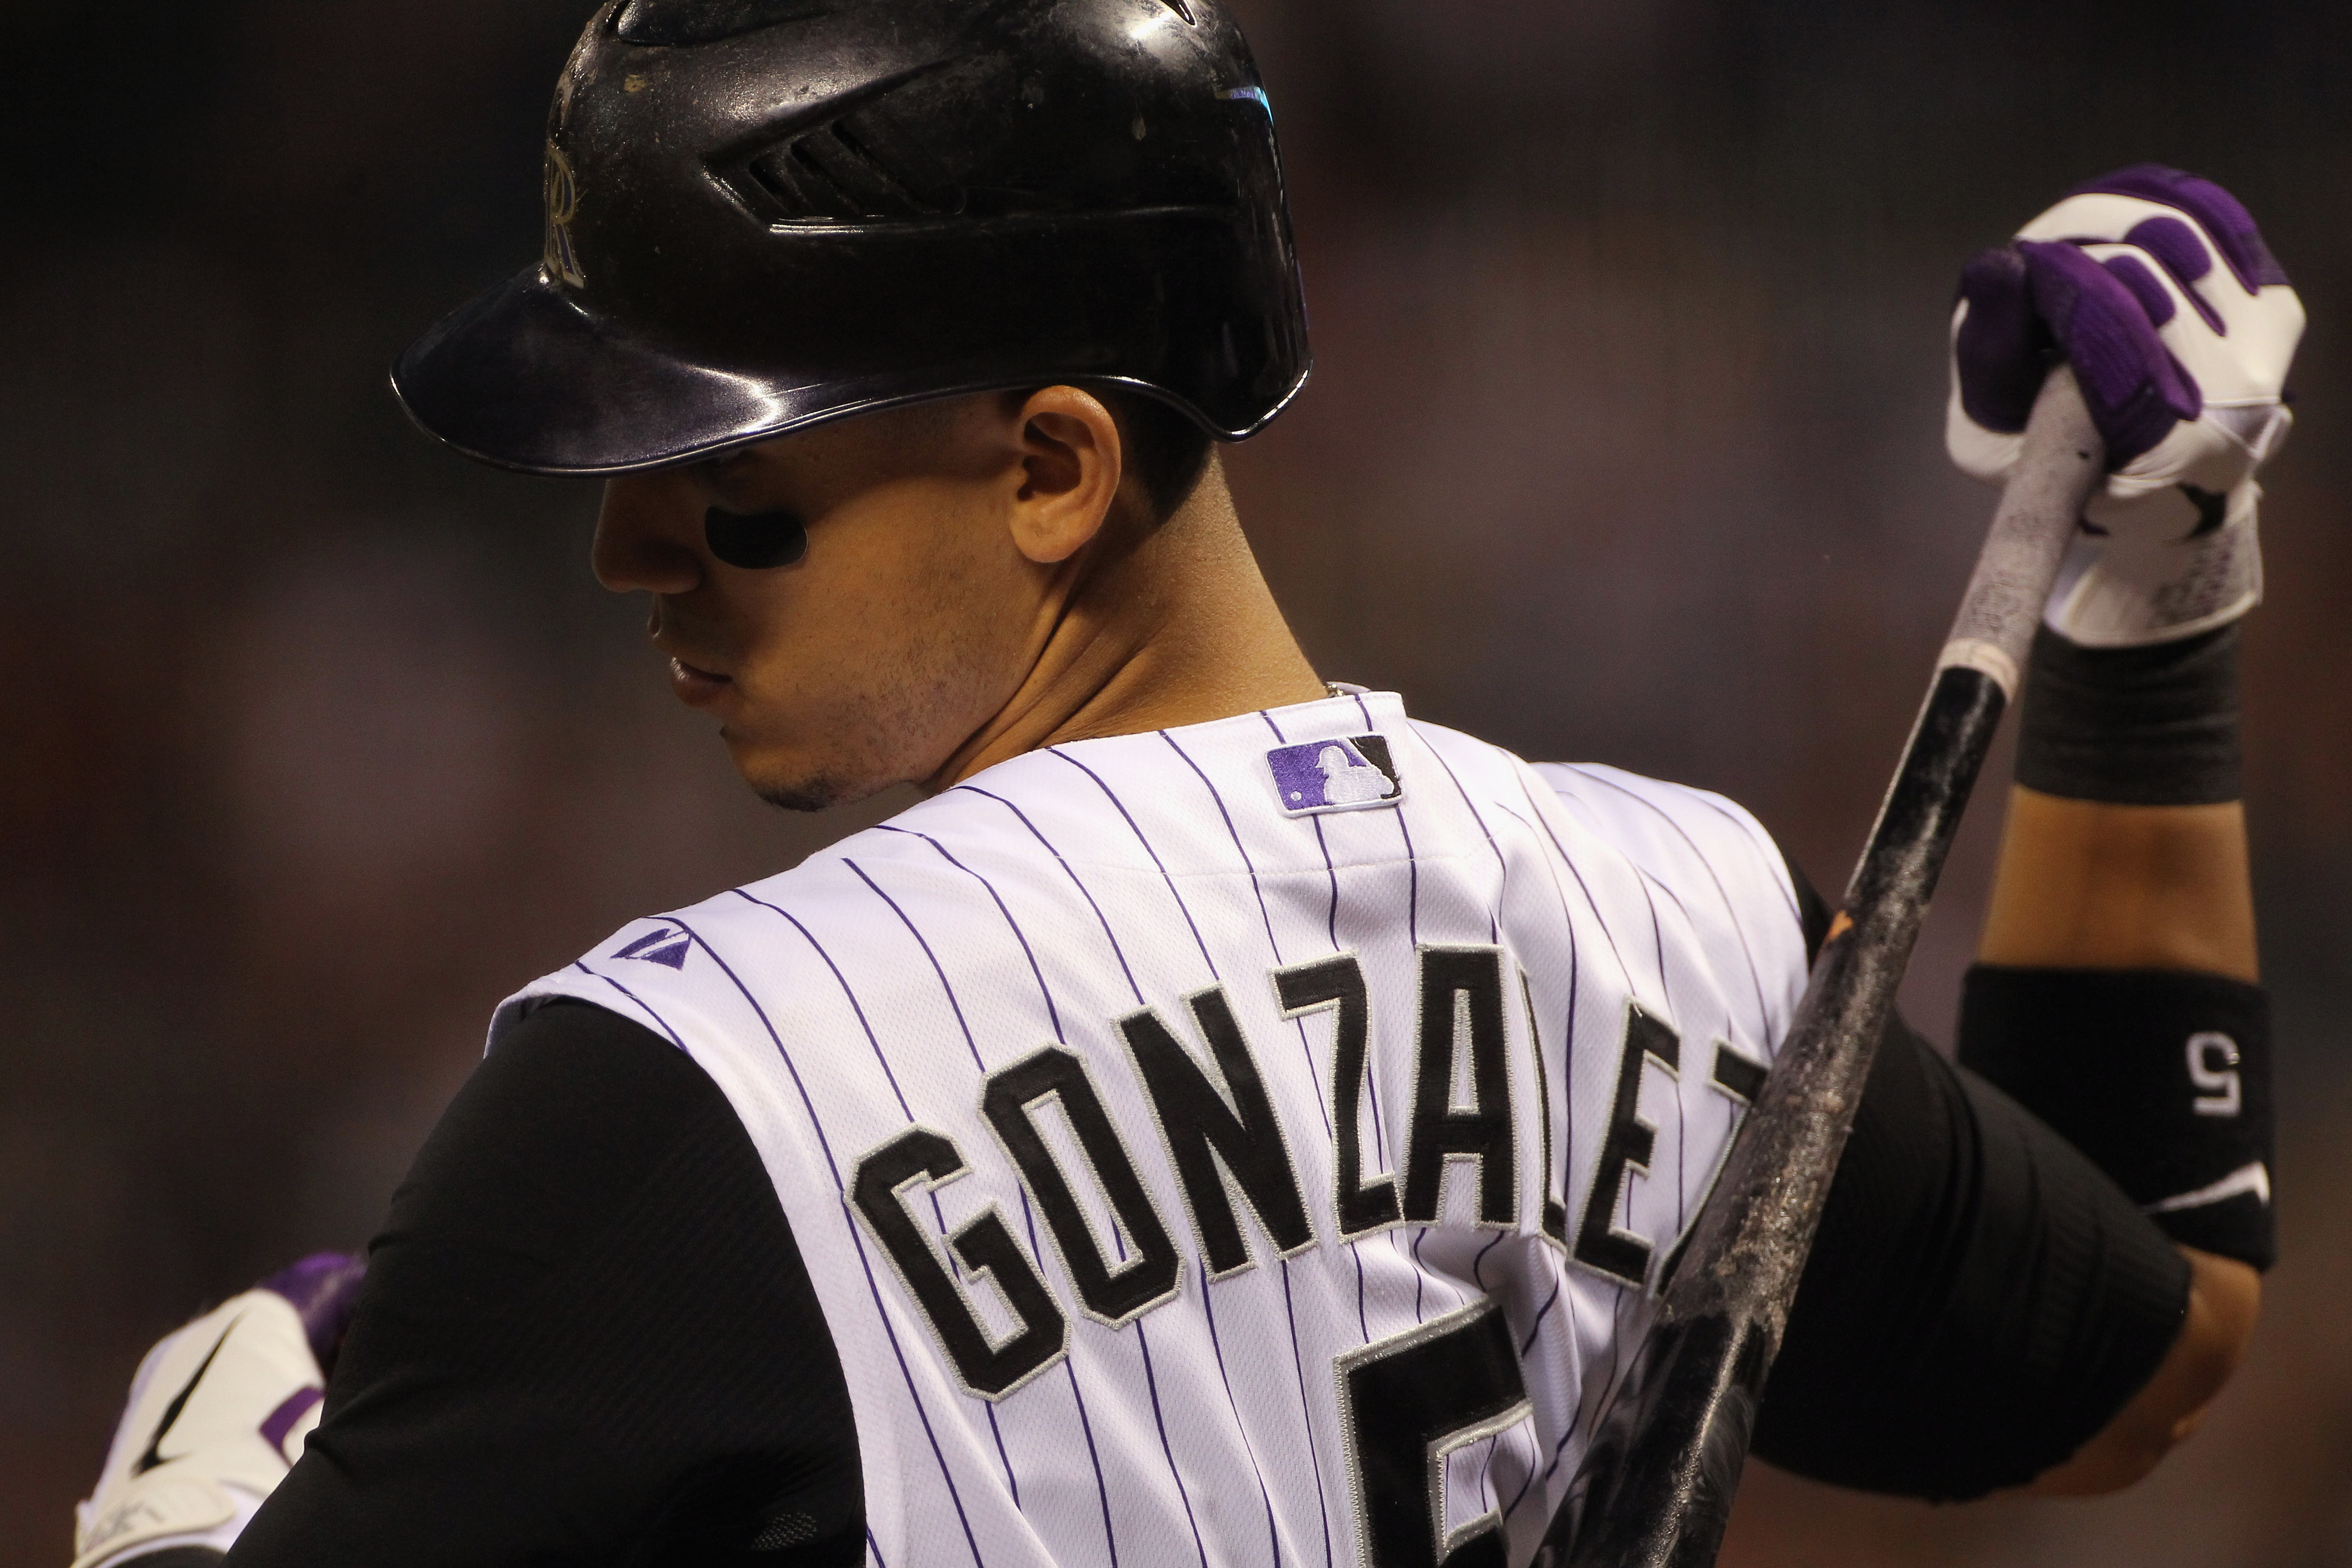 DENVER - SEPTEMBER 27:  Carlos Gonzalez #5 of the Colorado Rockies warms up on deck as he prepares to take an at bat against the Los Angeles Dodgers at Coors Field on September 25, 2010 in Denver, Colorado. The Dodgers defeated the Rockies 3-1.  (Photo by